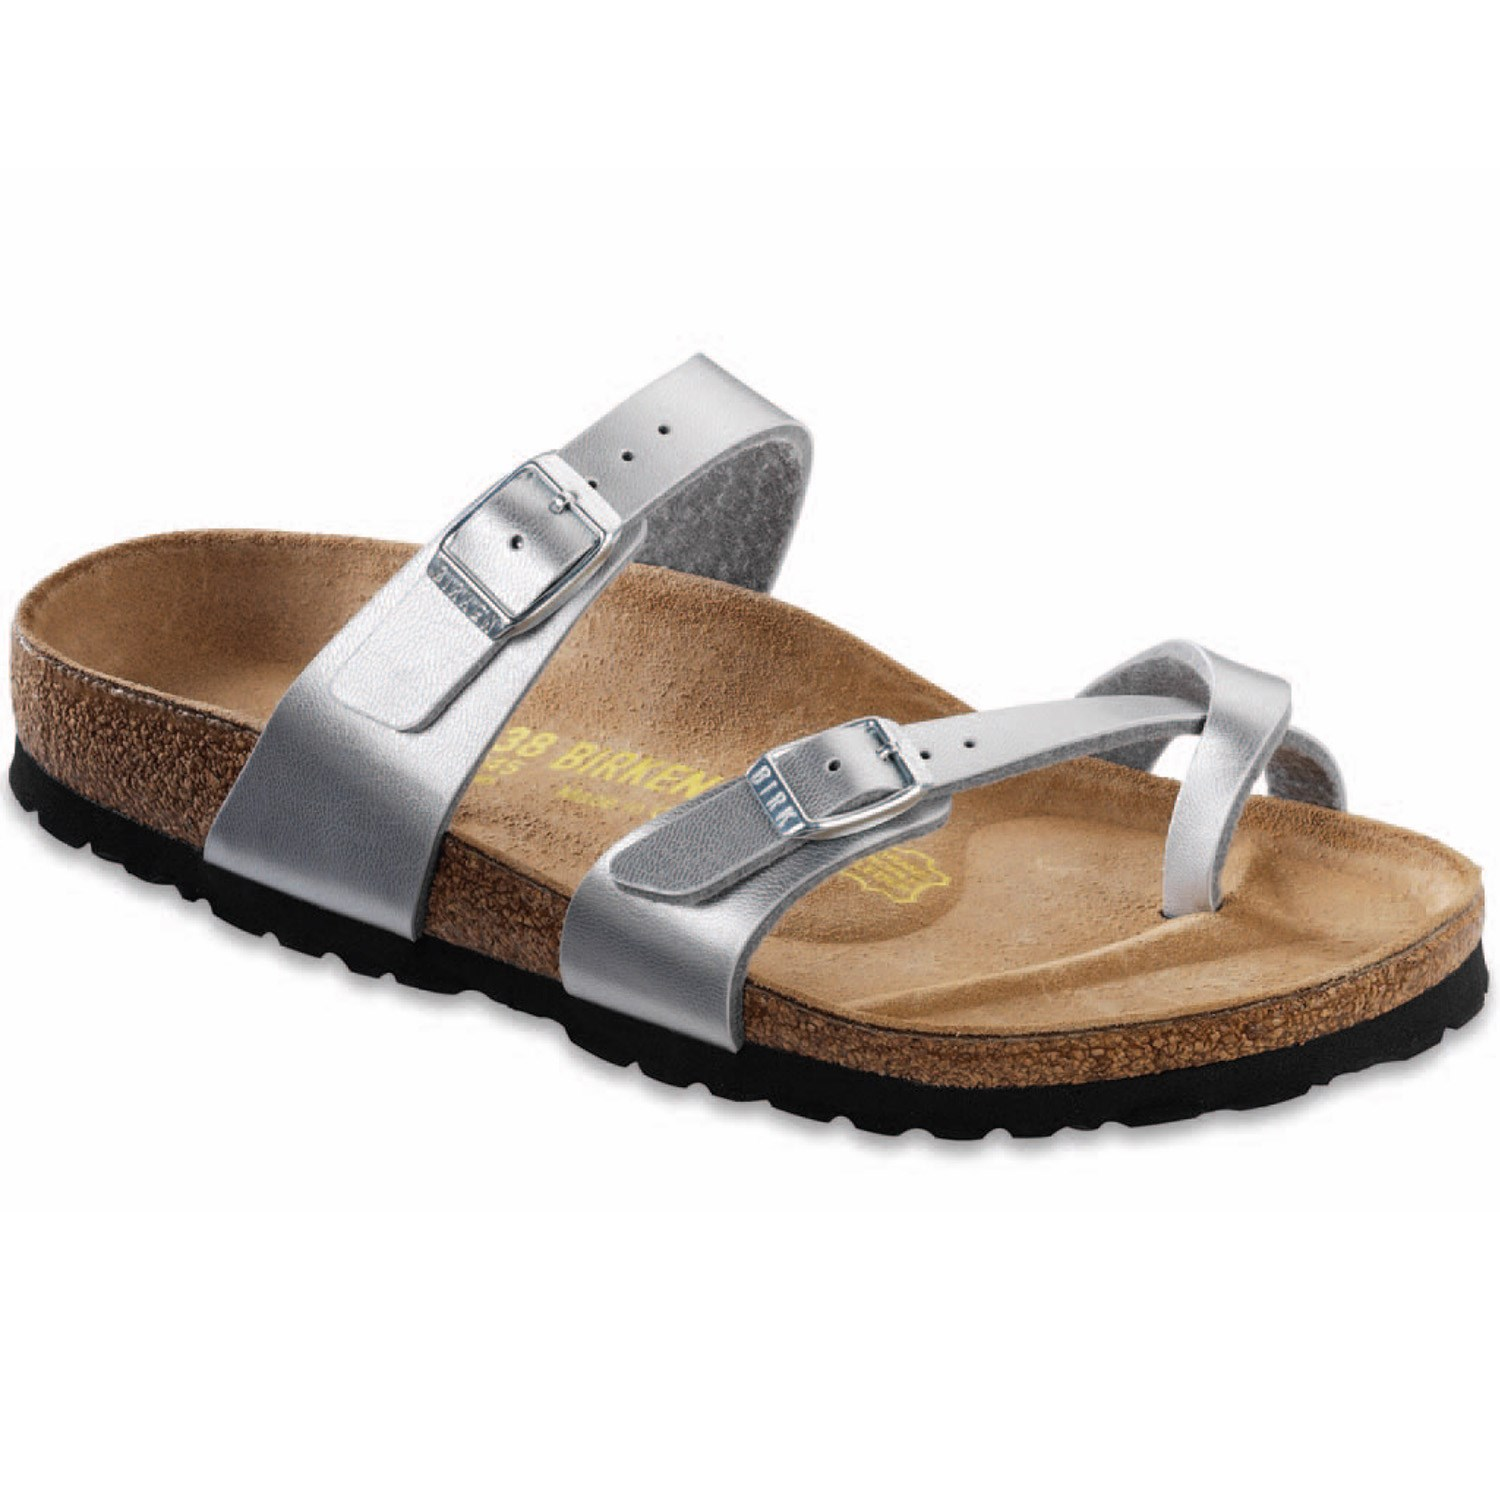 birkenstock london wei?